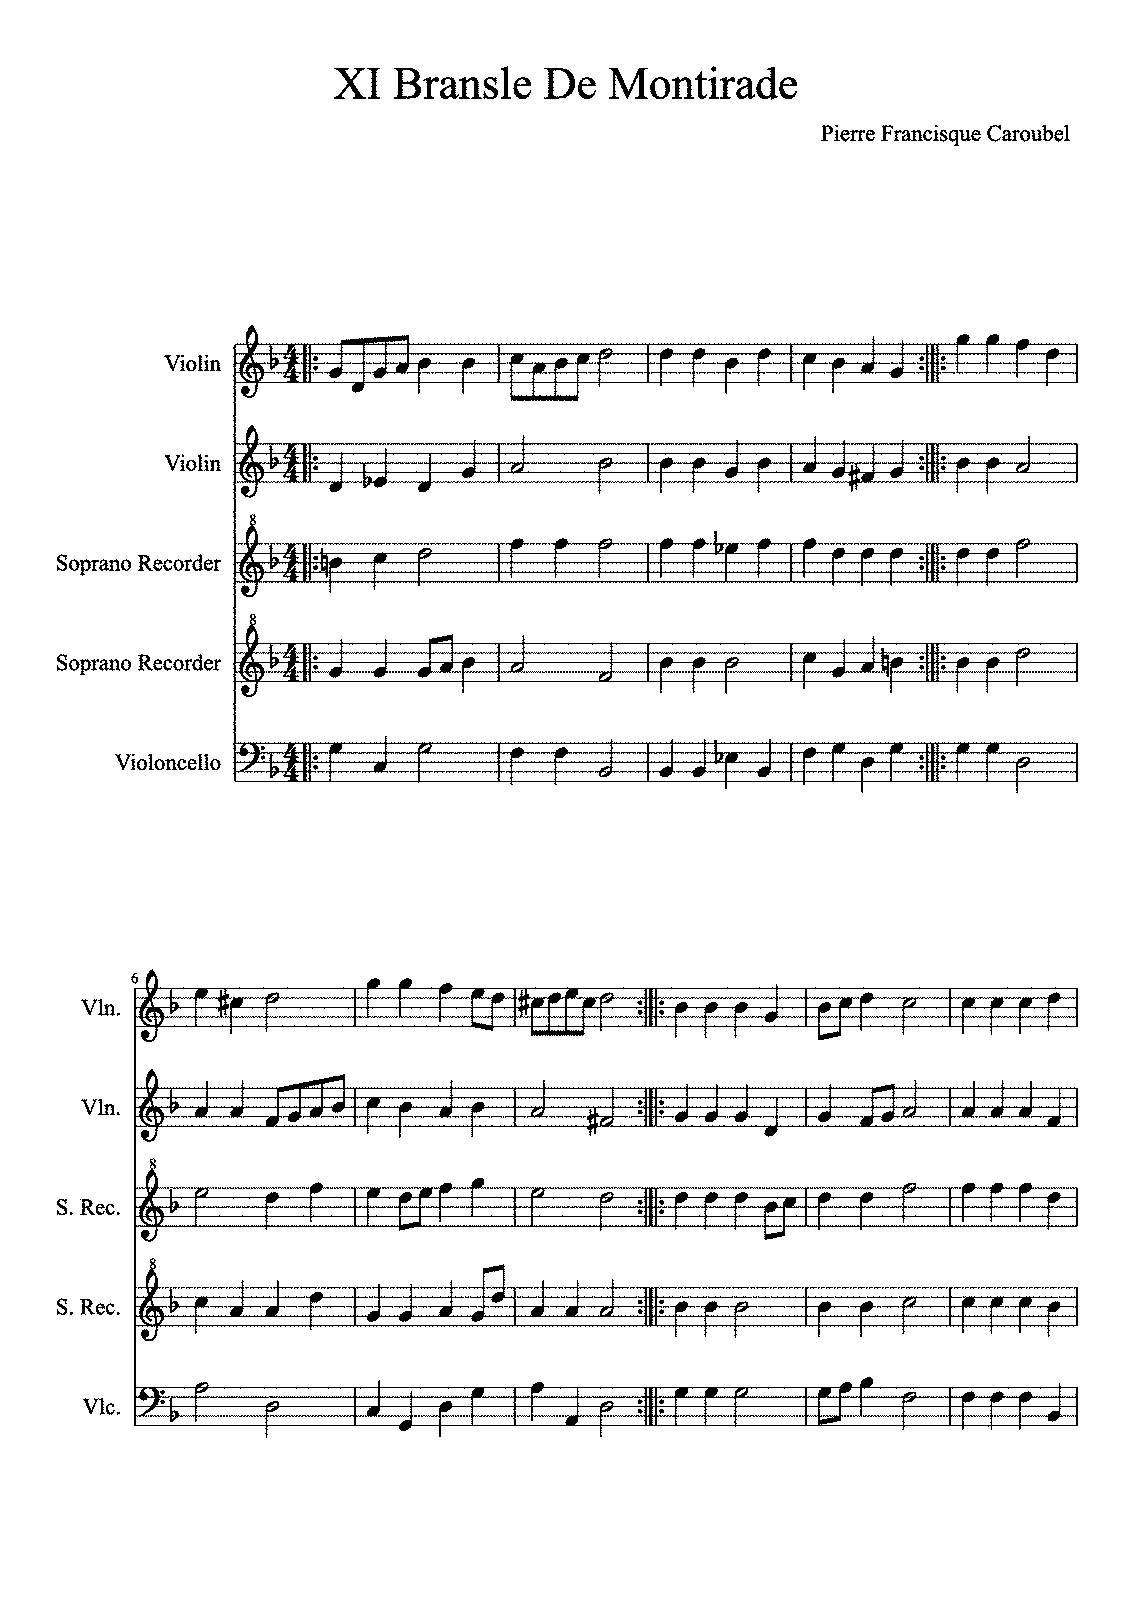 Everybody Wants To Be A Cat Sheet Music Carnavalsmusic